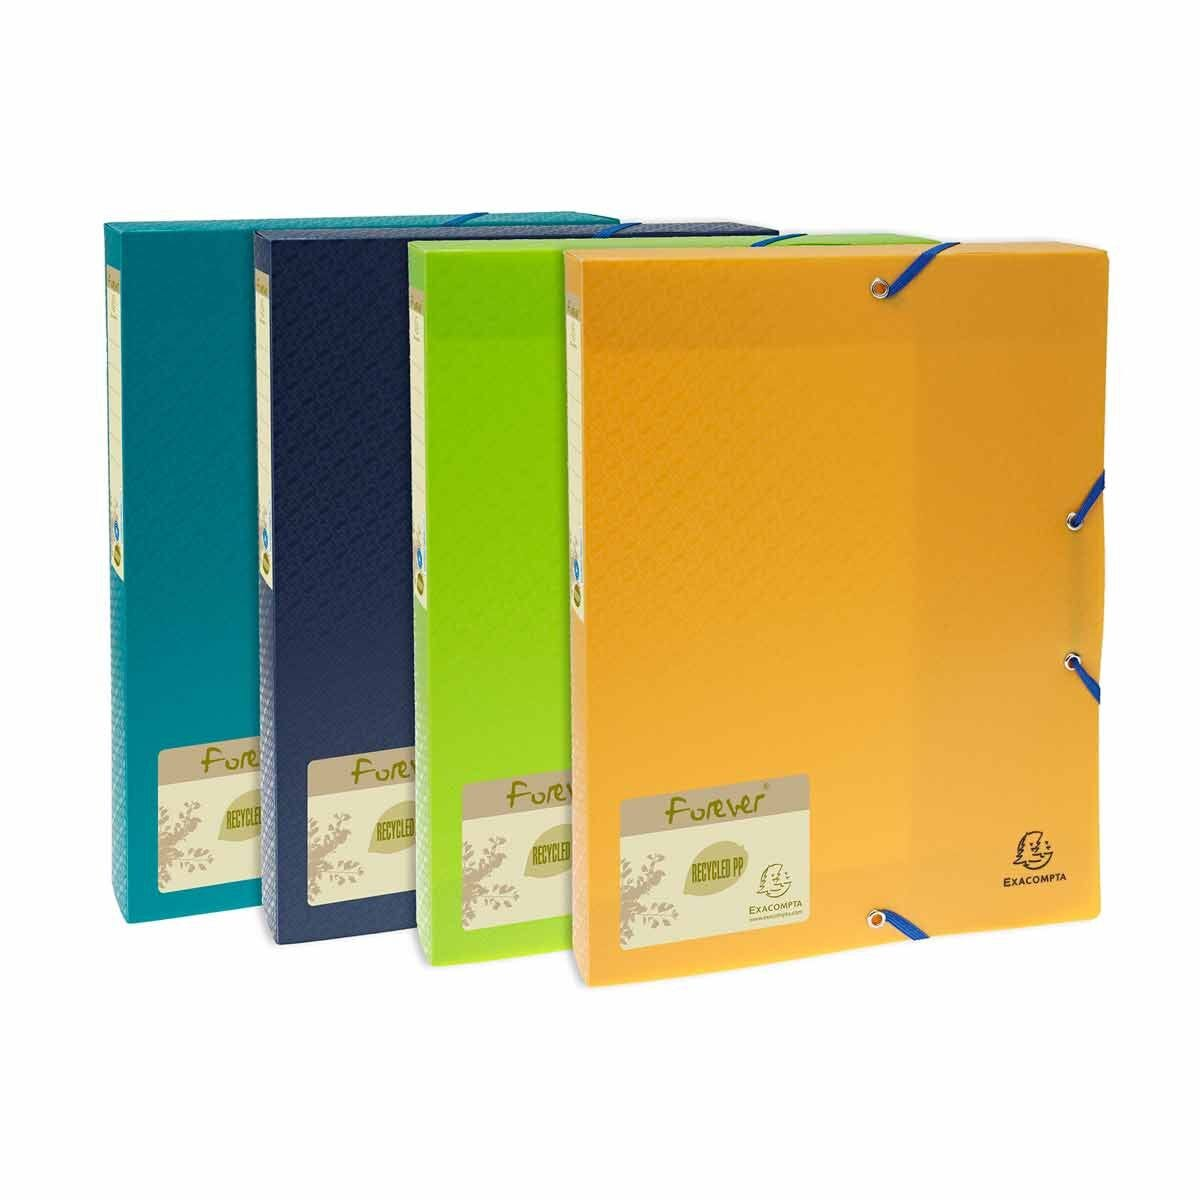 Exacompta Forever Polypropylene Elasticated Box File A4 40mm Pack of 8 Assorted